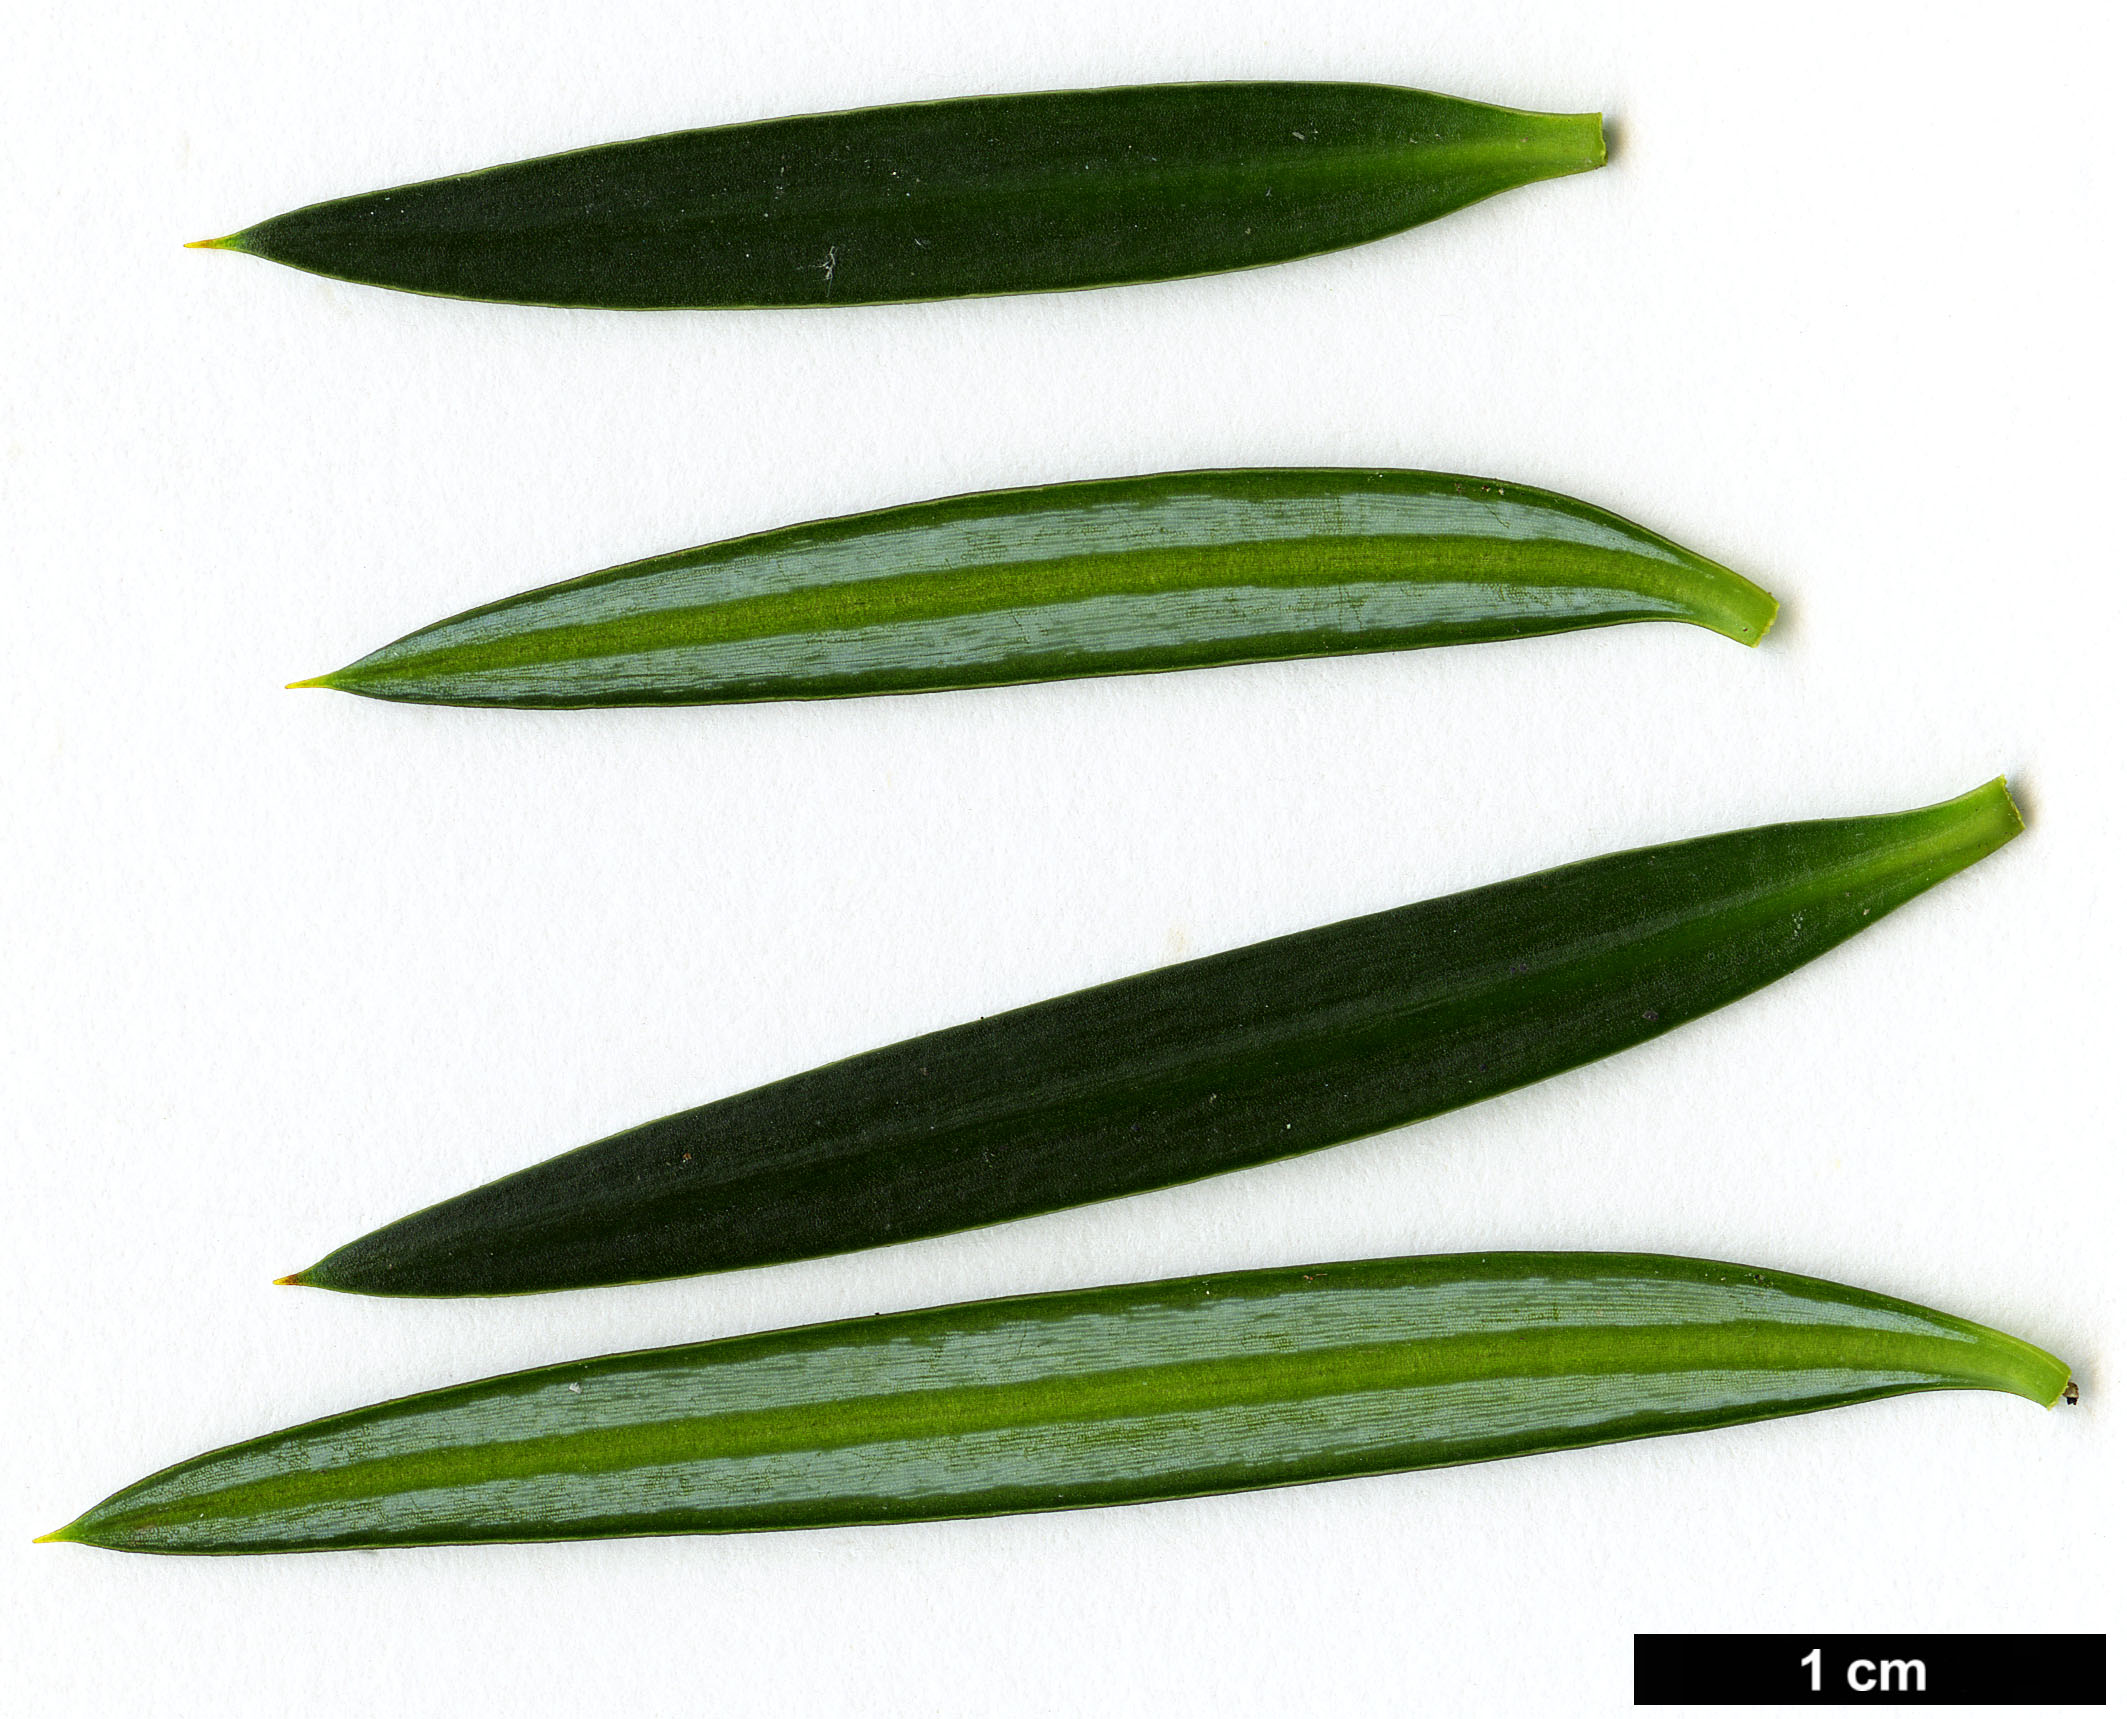 High resolution image: Family: Podocarpaceae - Genus: Podocarpus - Taxon: nubigenus